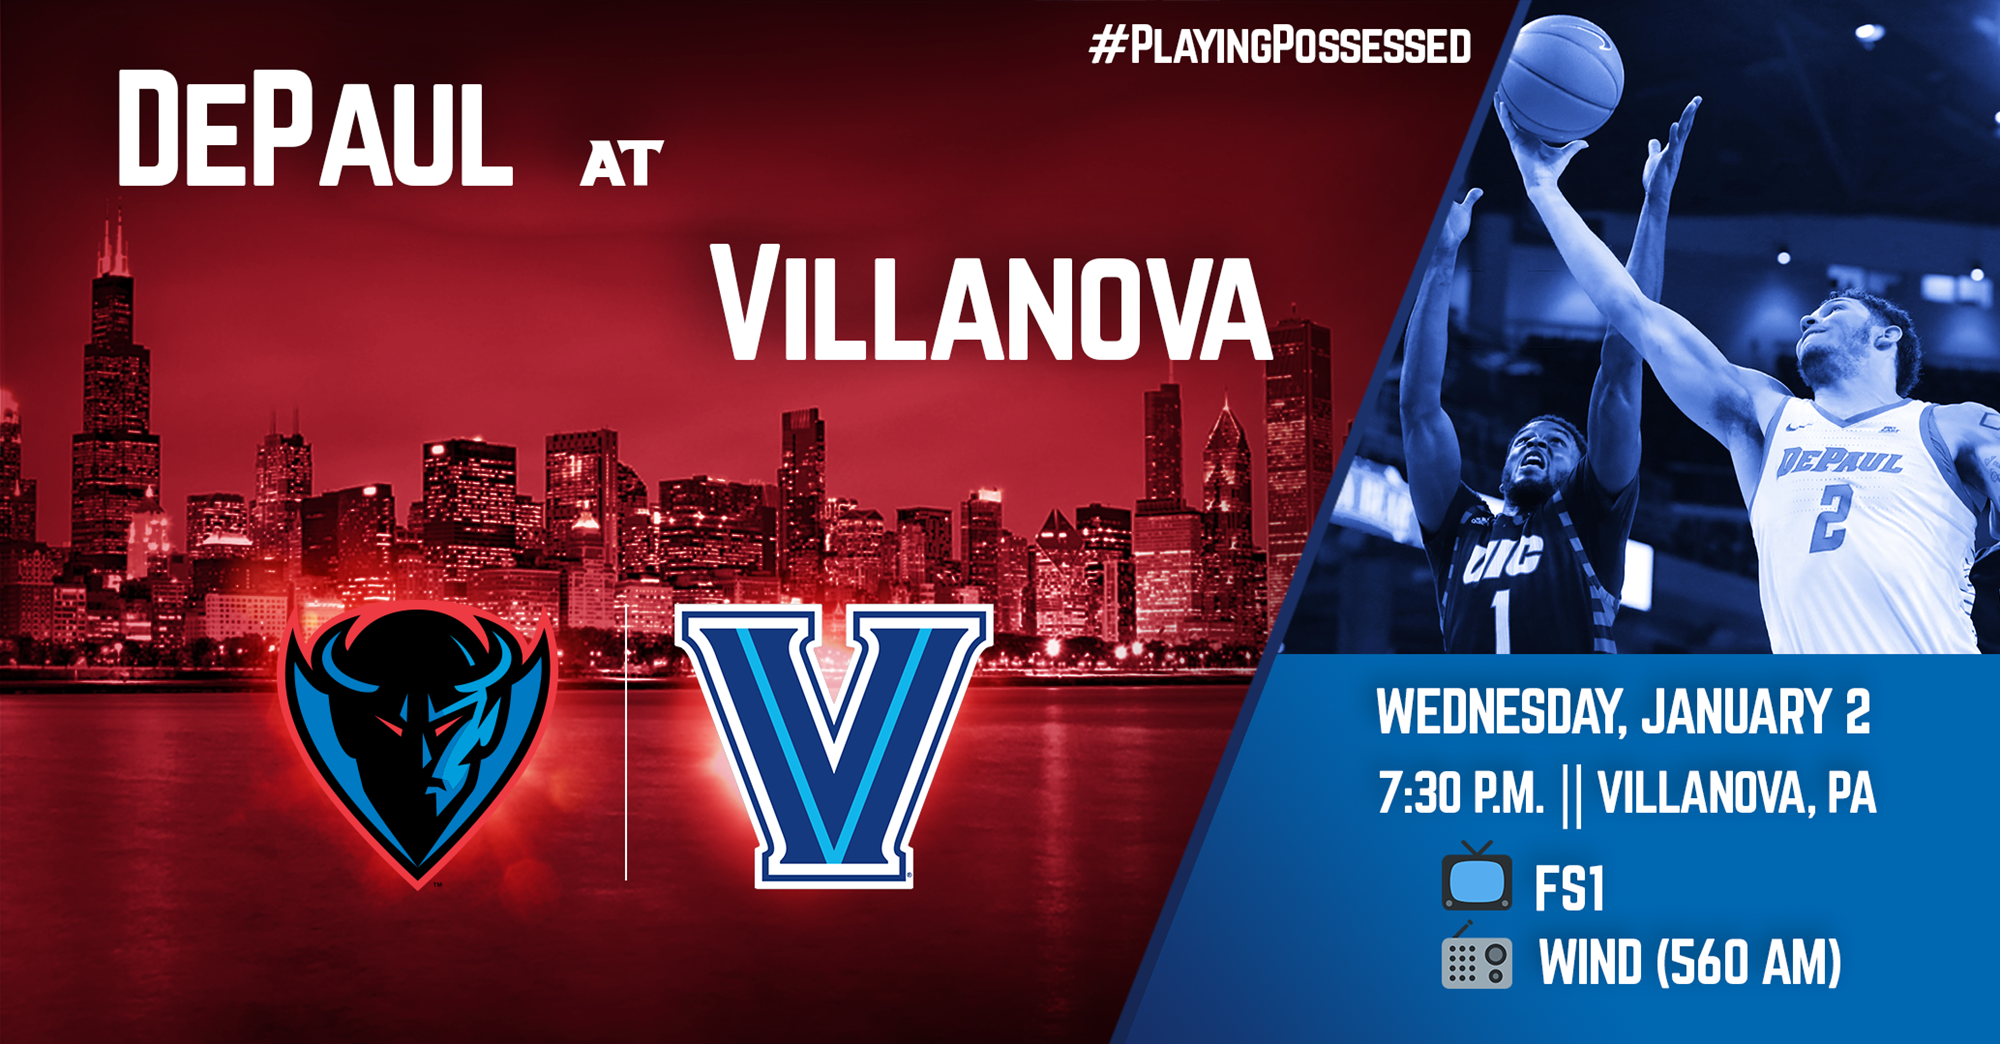 DePaul Visits Villanova on Wednesday - DePaul University